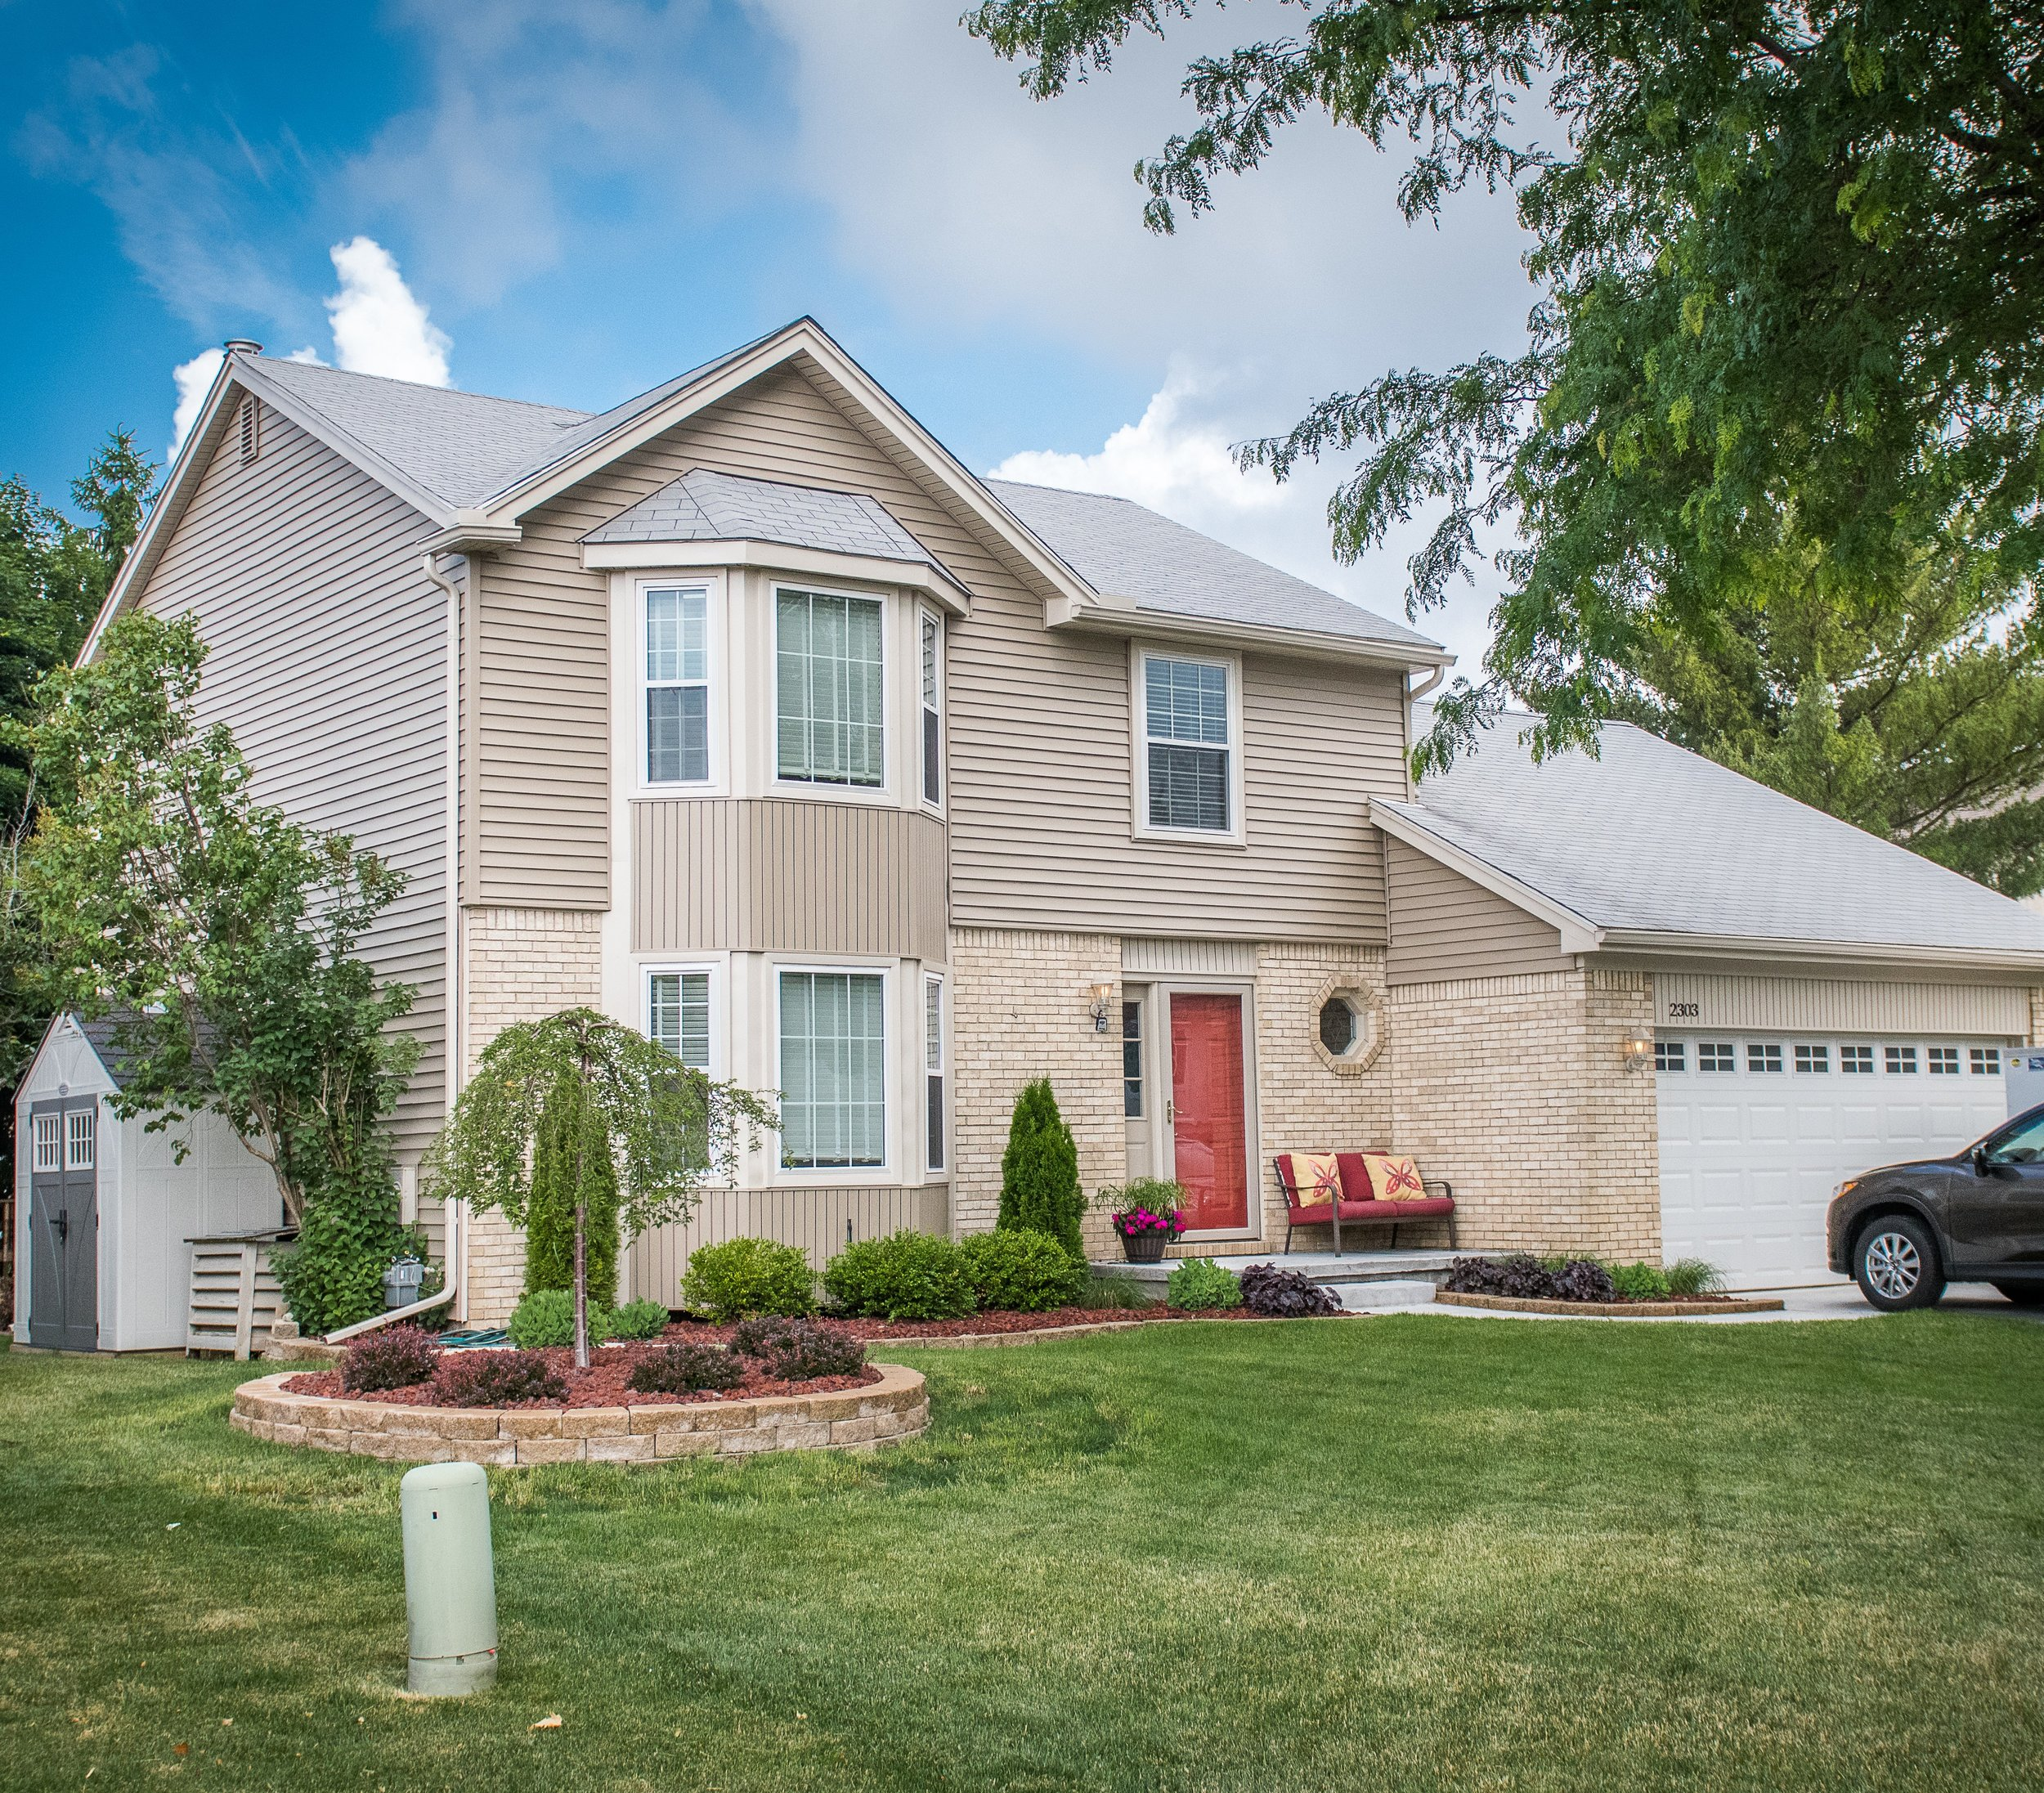 Pawnee- Wixom - $255,900   DOM 6 / Sold for $6900 over asking price / 10 Showings